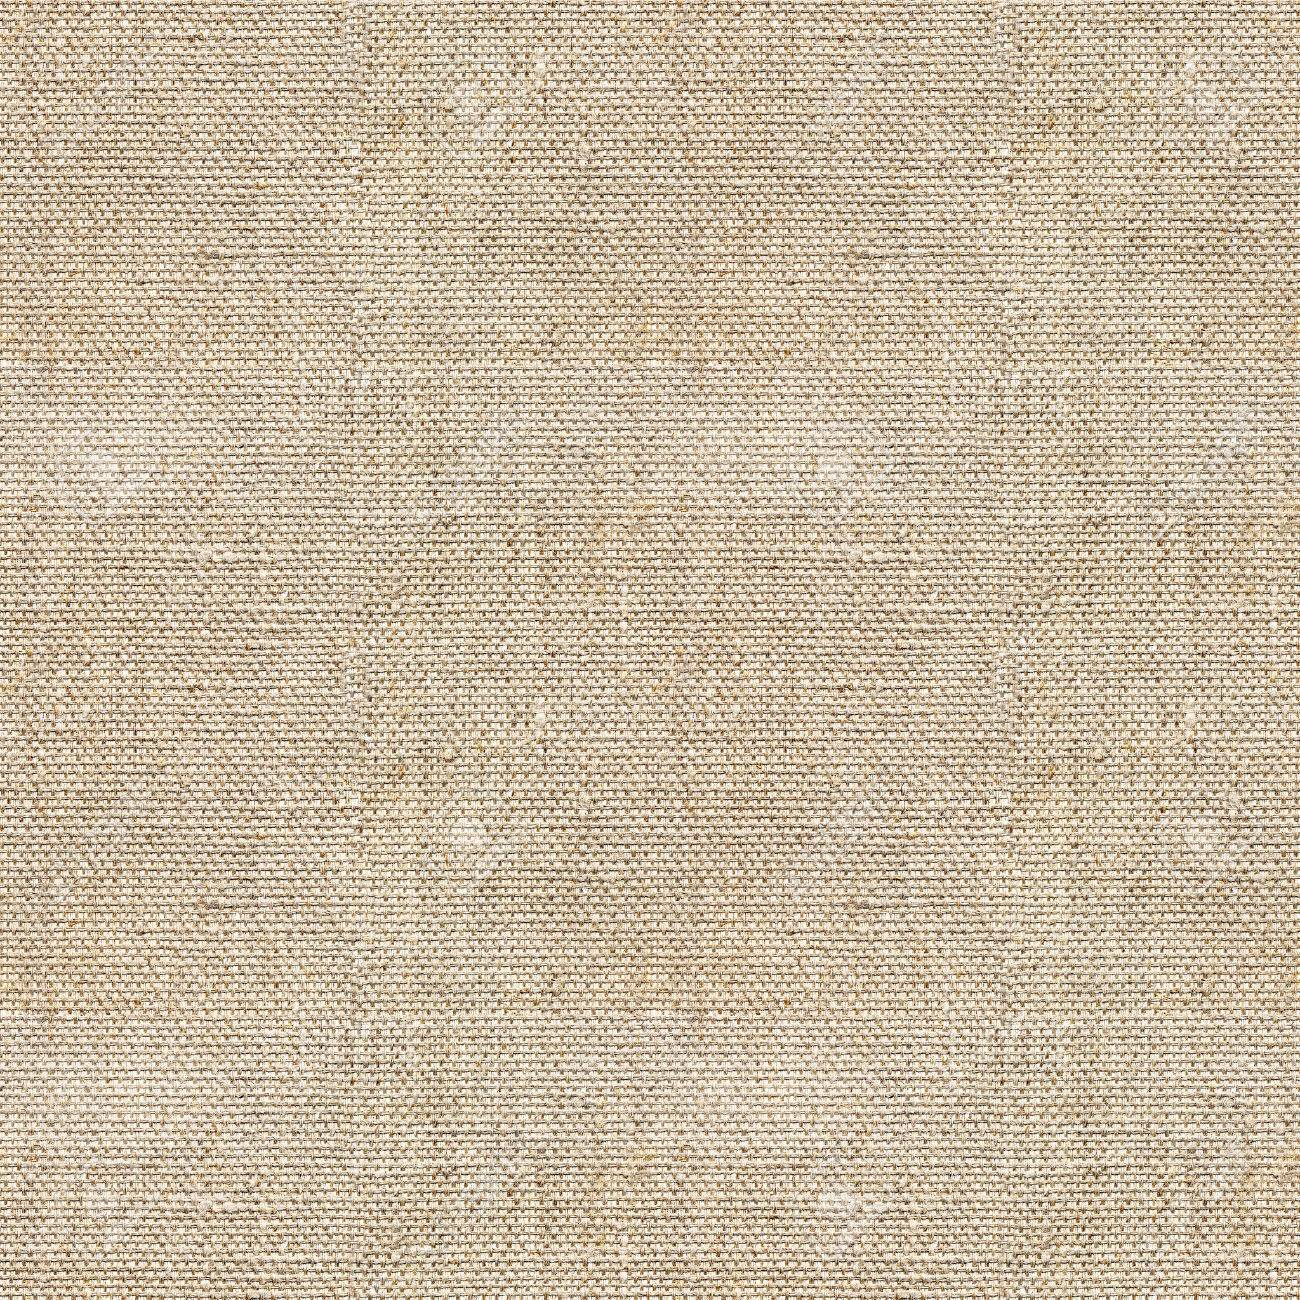 Brown Seamless Fabric Textures Seamless Sandy Brown Canvas Paper Background Endless Fabric